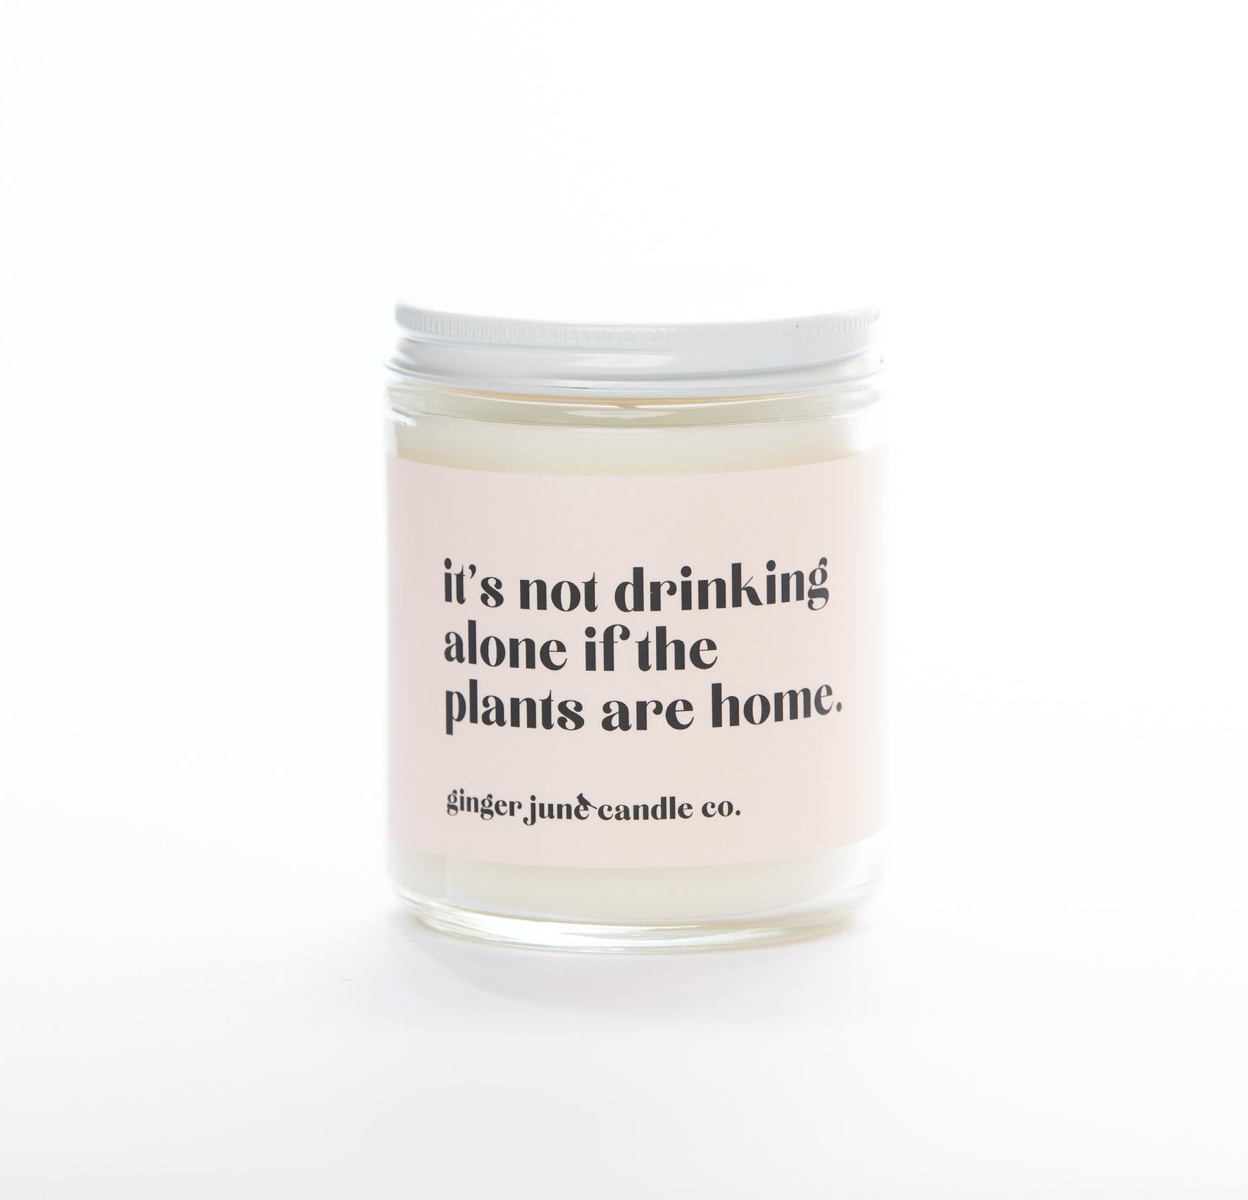 Not drinking alone if plants are home